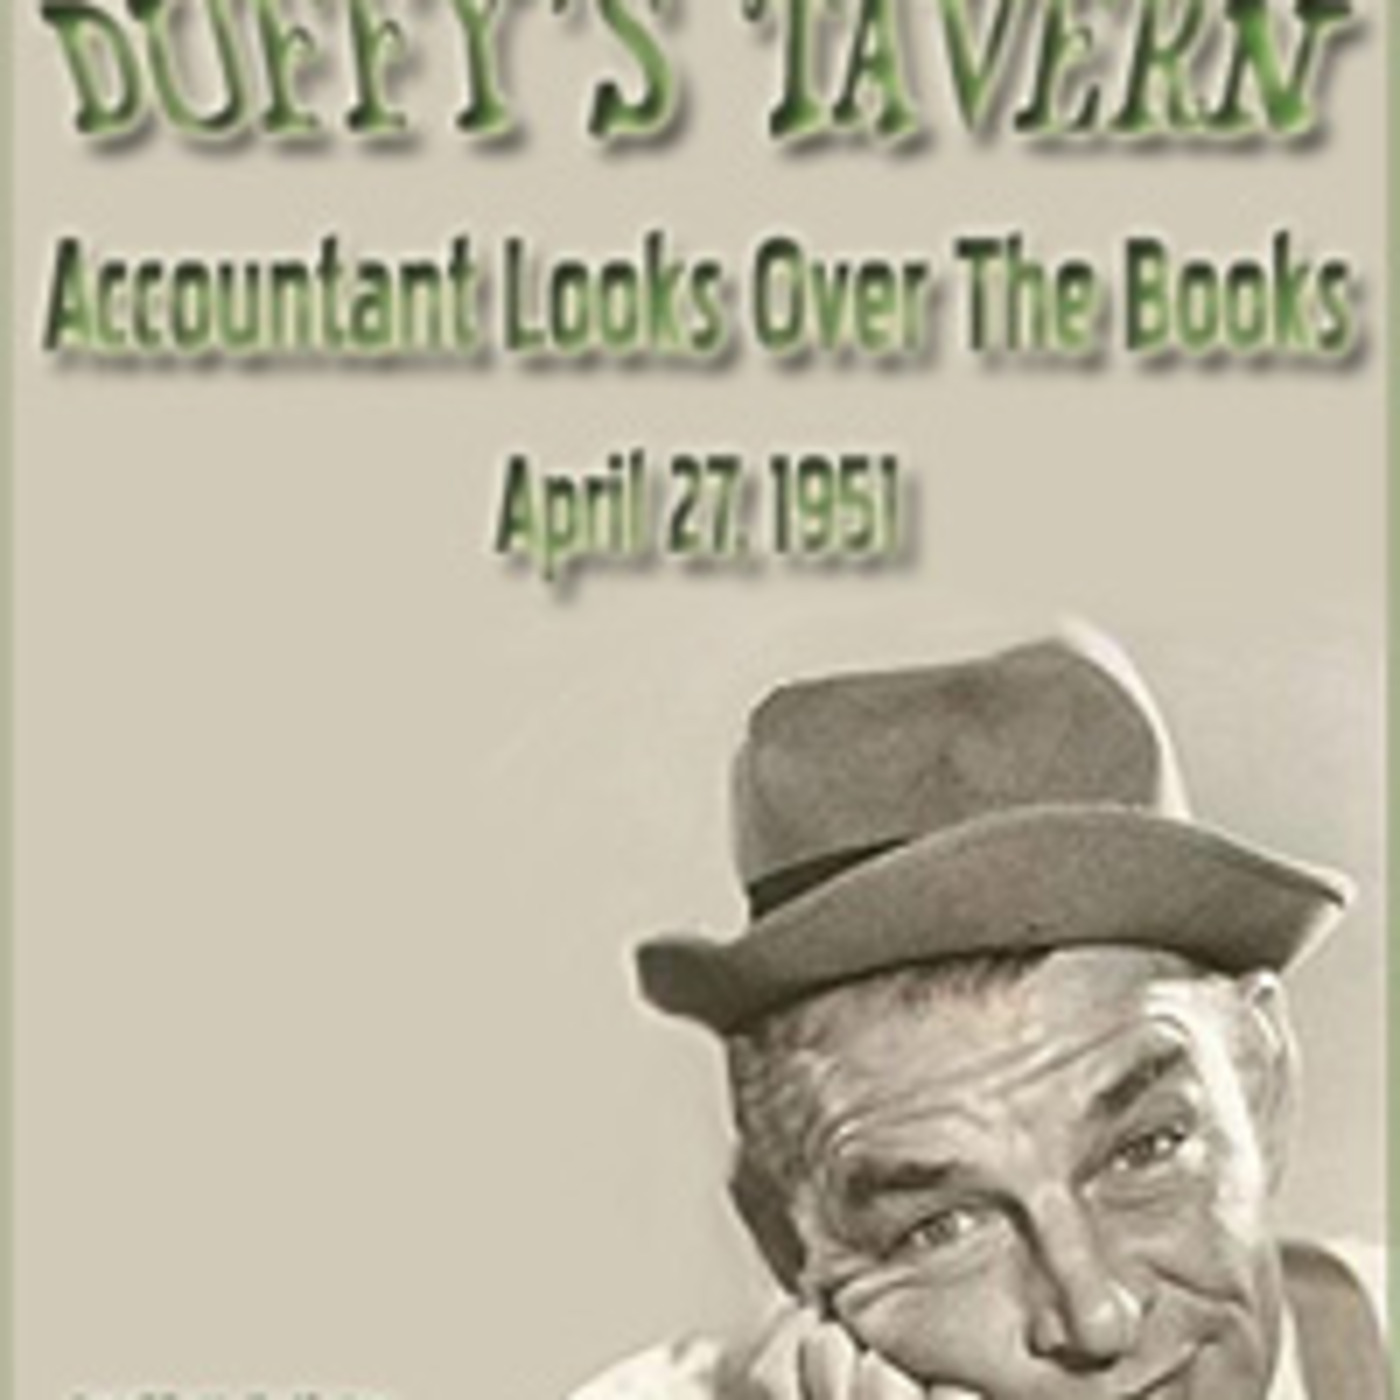 Duffy's Tavern - An Accountant Looks Over The Books (04-27-51)